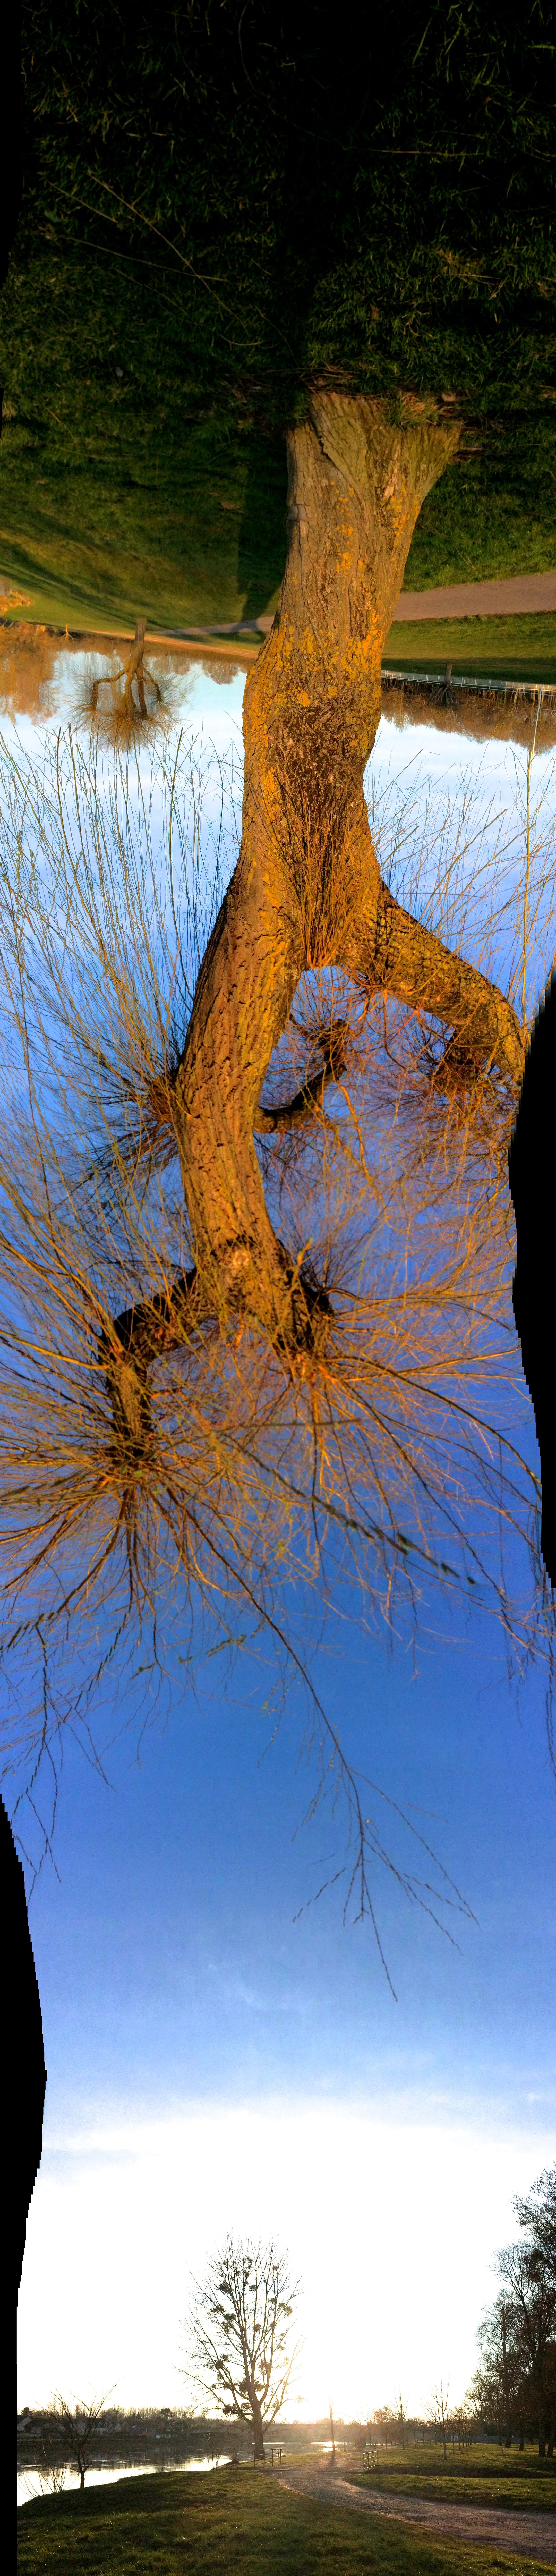 Root Matter (Le Port)_6 Photograph, 8 Mars 2015 ; copyright © Tennyson Woodbridge, 1963 to present